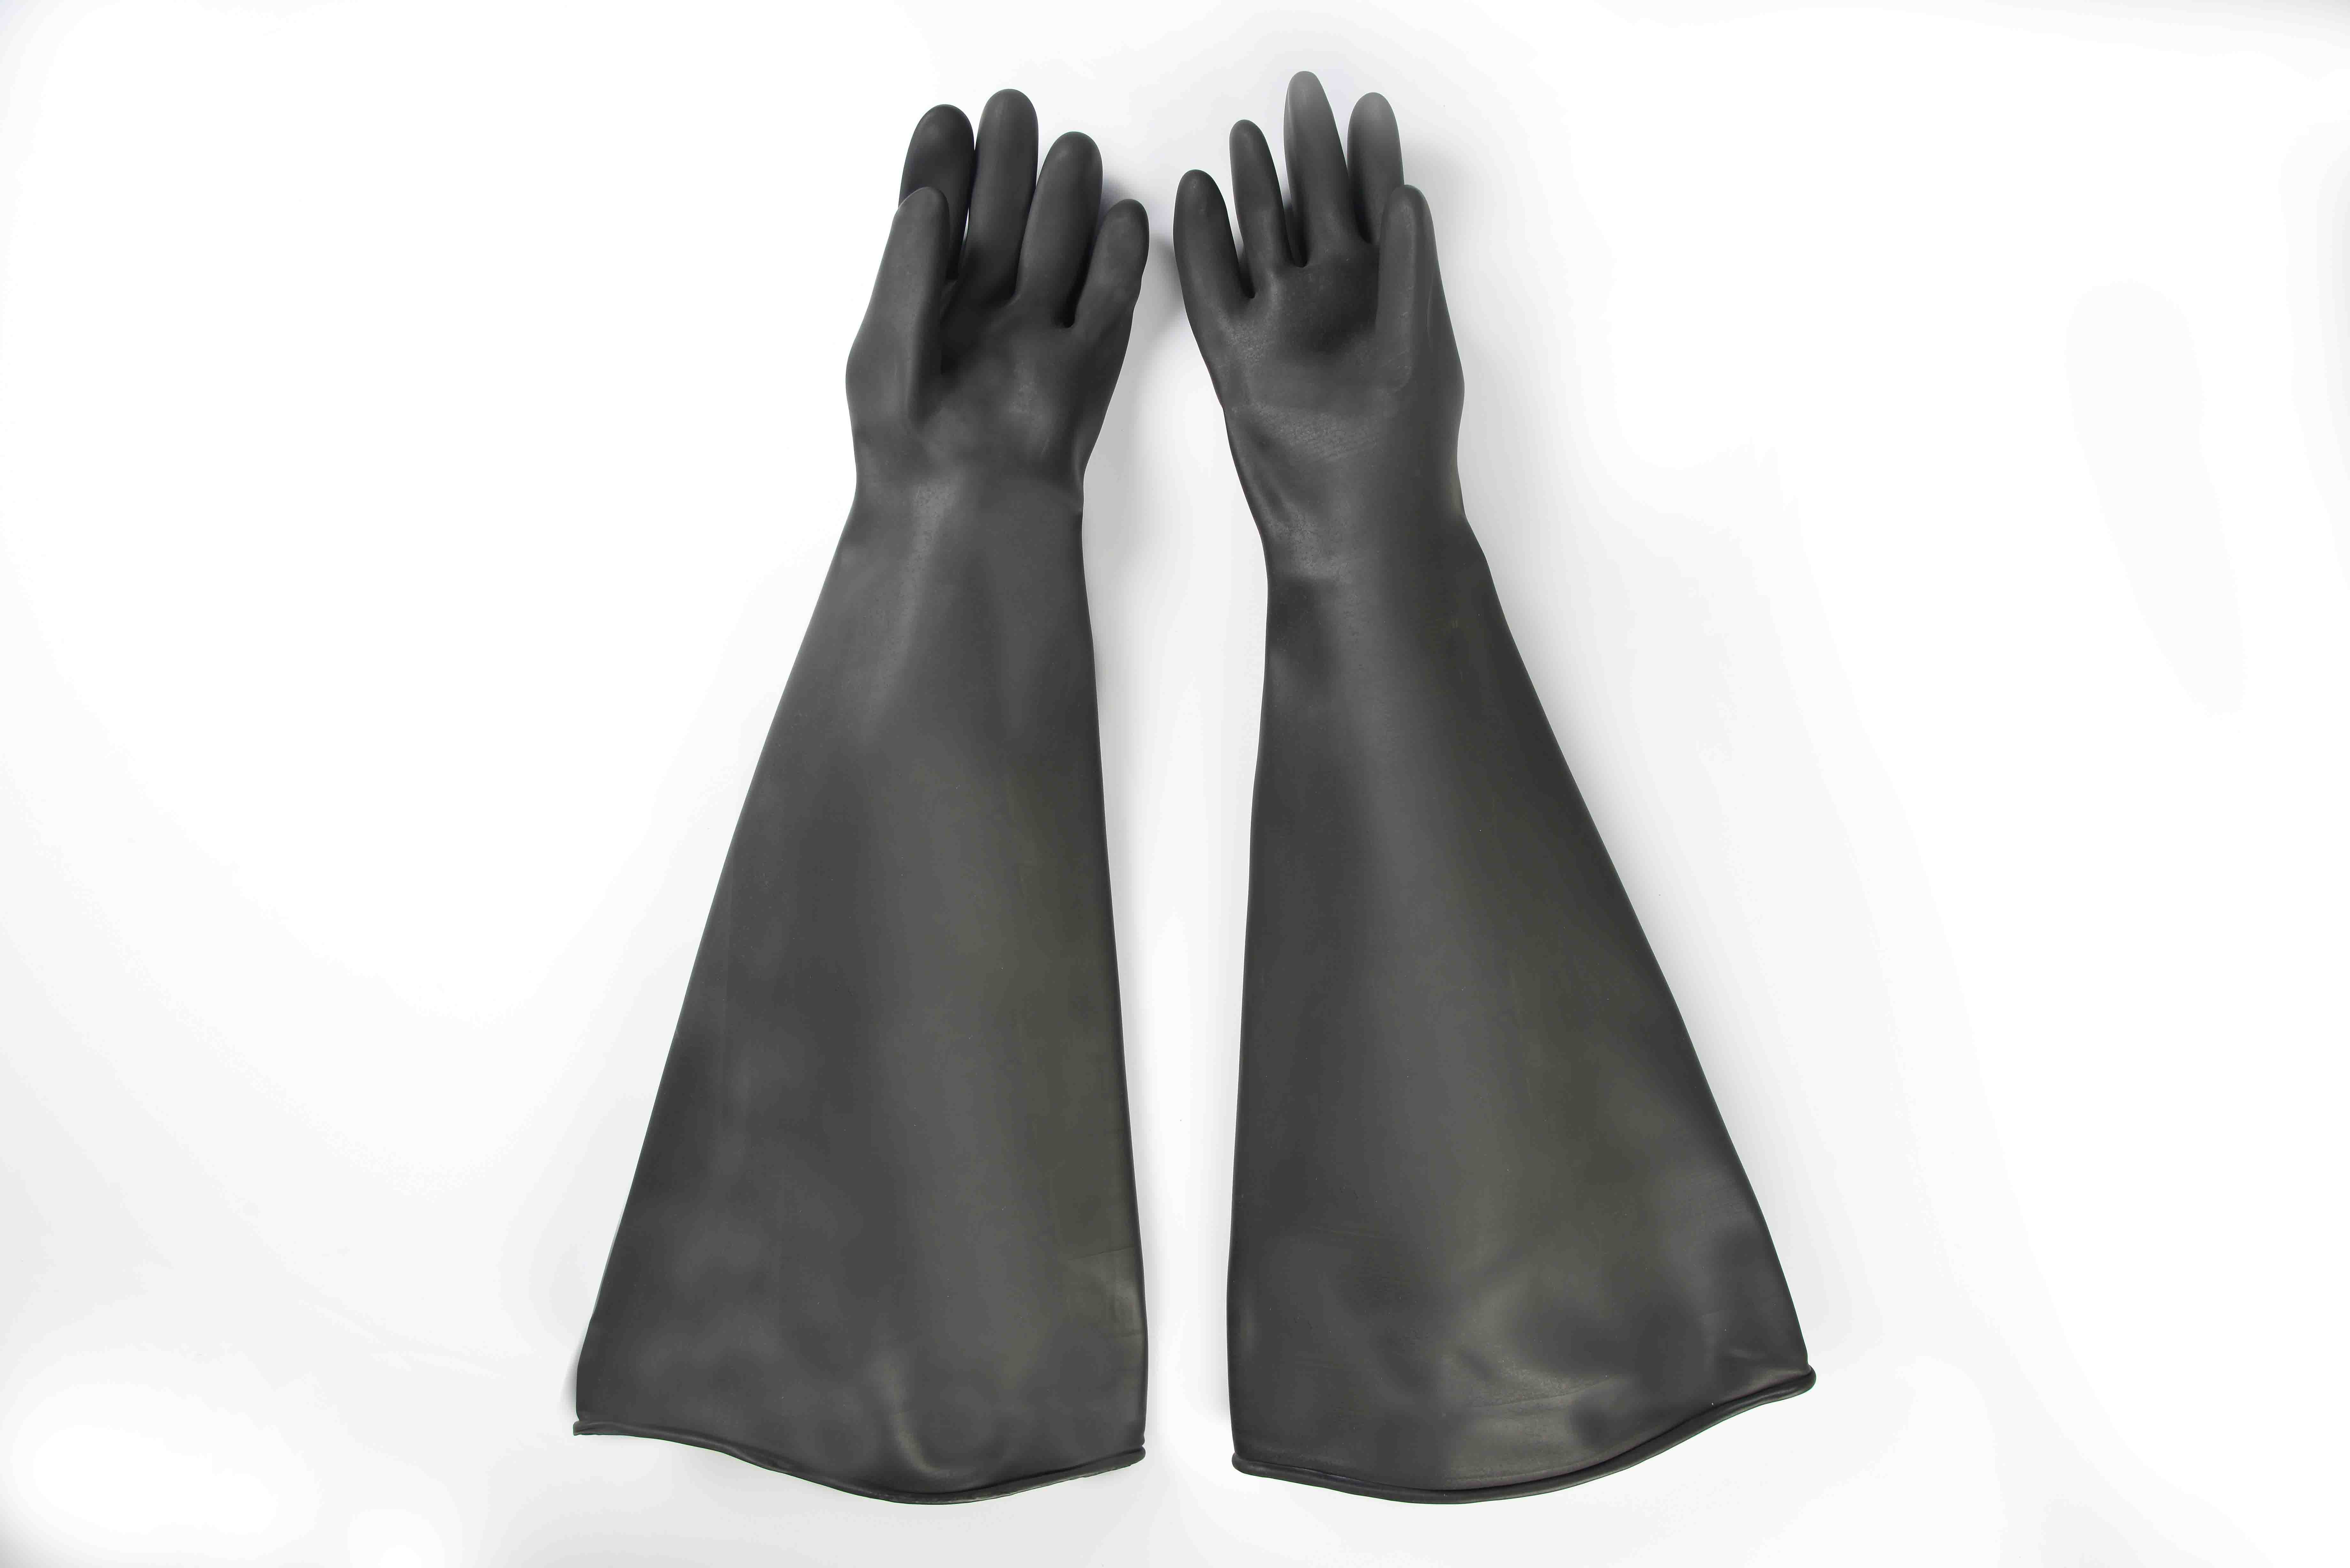 15 Years Manufacturer 26″ Industrial rubber glove-smooth finish Nairobi Manufacturer